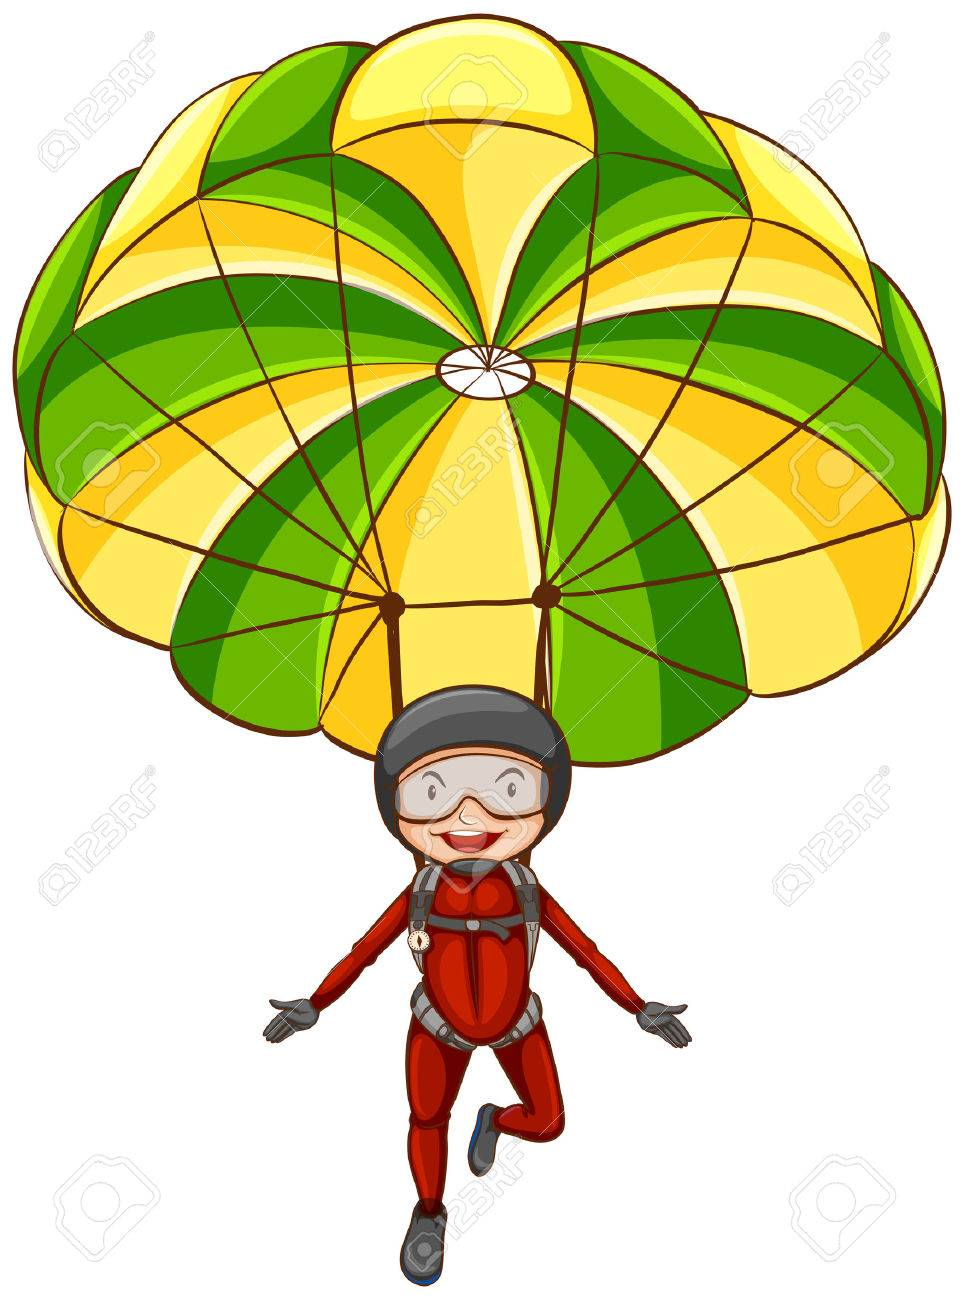 Clip Art Parachute Clipart illustration of a person parachuting in the sky royalty free stock vector 32349003